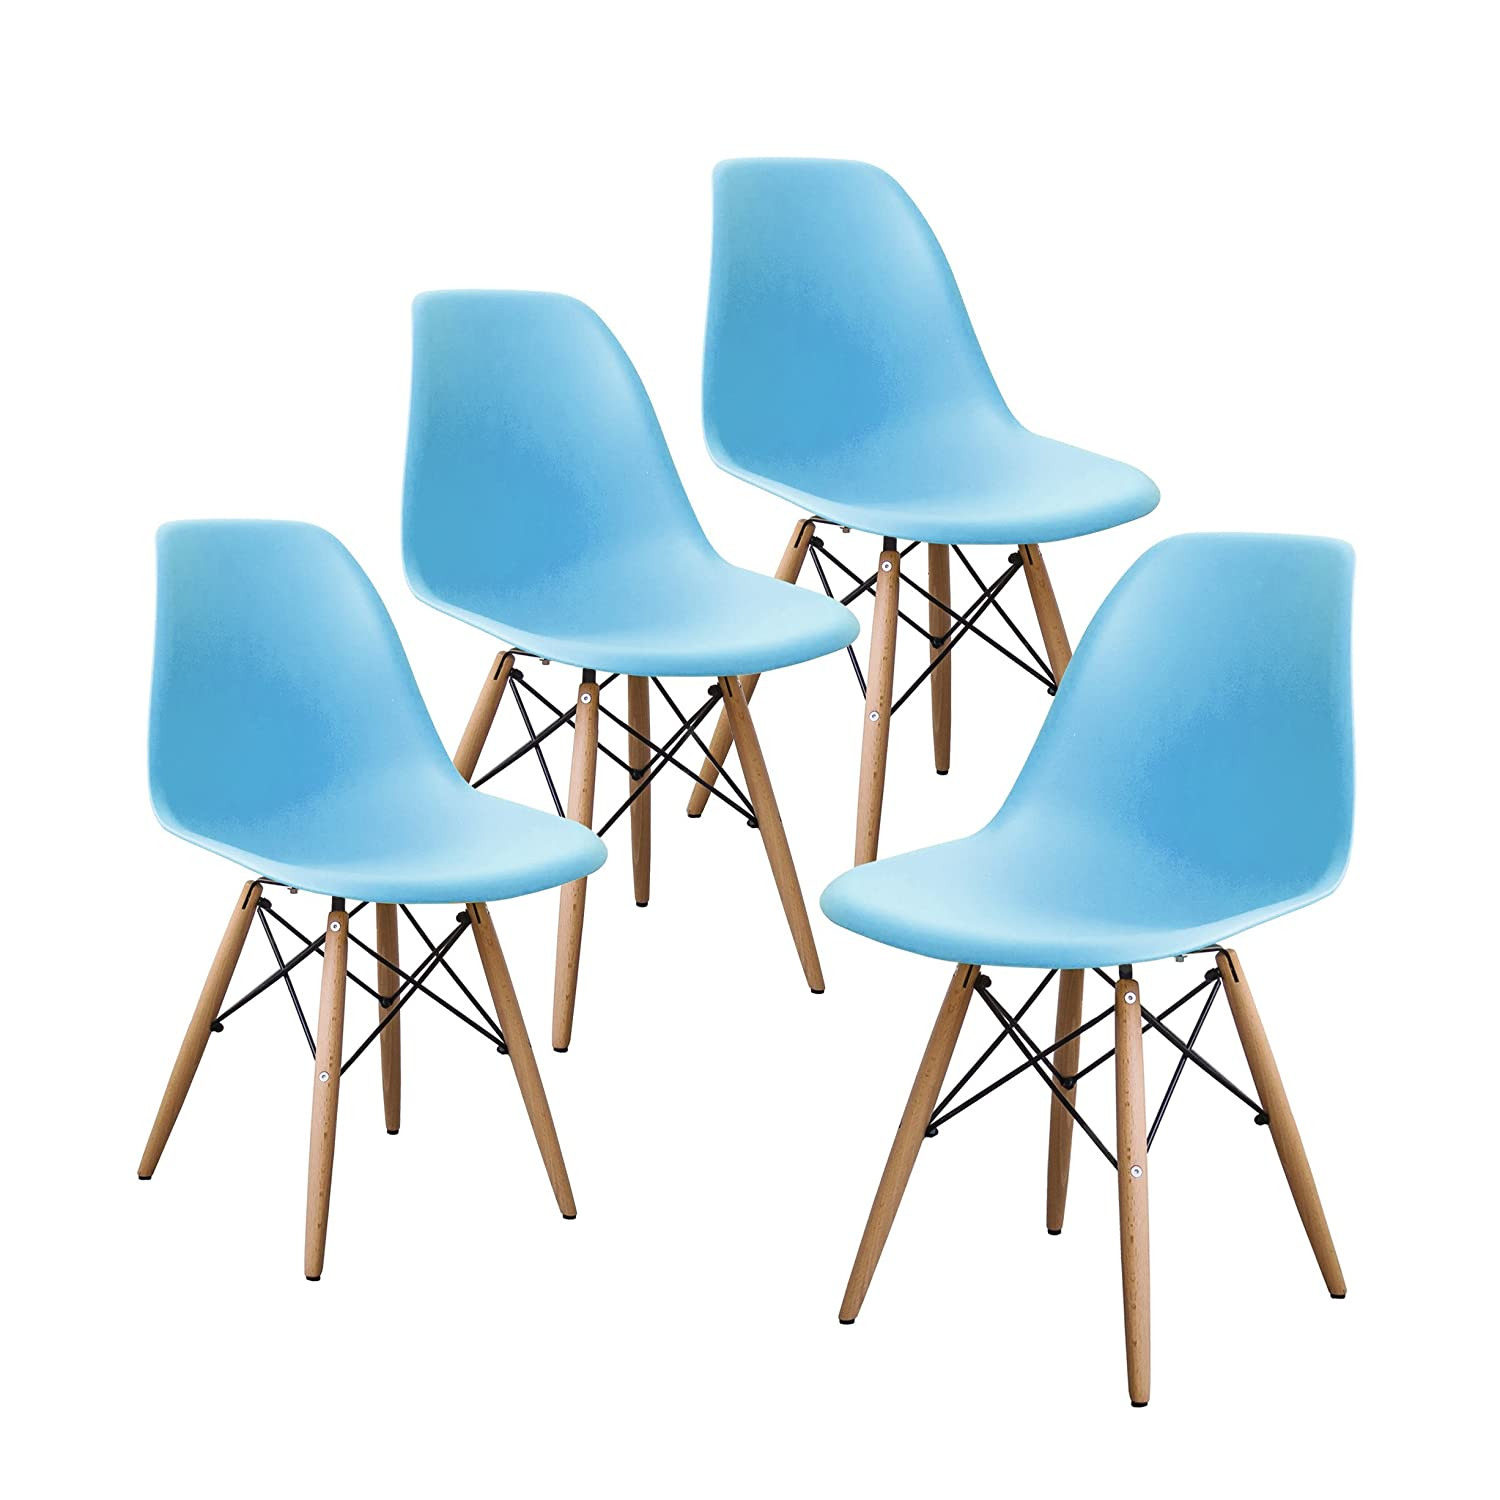 Buschman Set of Four Blue Eames-Style Mid Century Modern Dining Room Wooden Legs Chairs